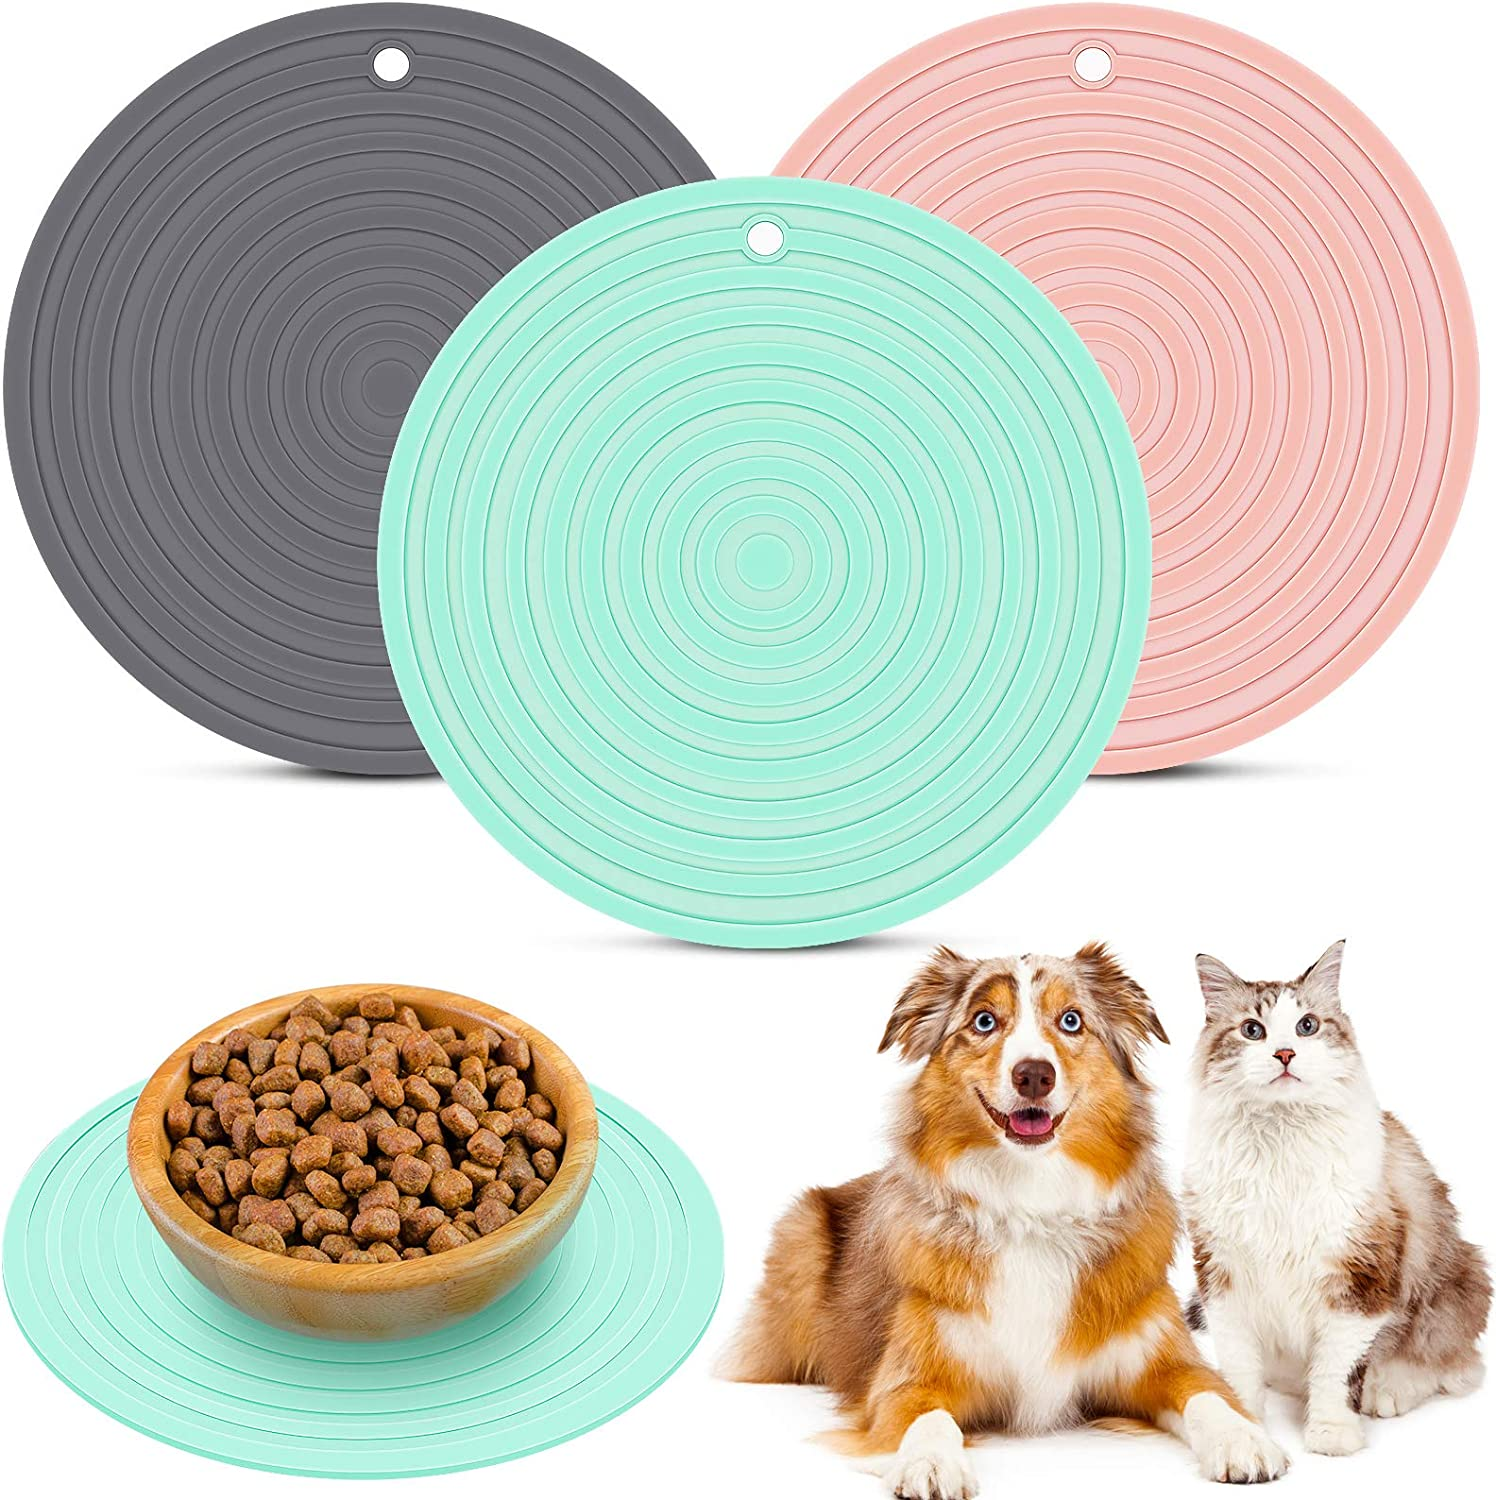 3 Pieces Silicone Pet Food Mat Pet Feeding Mat for Dog and Cat Food Bowl Place-mat Preventing Food and Water Overflow Suitable for Medium and Small Pet, Green, Pink and Gray, 9.5 x 9.5 Inches